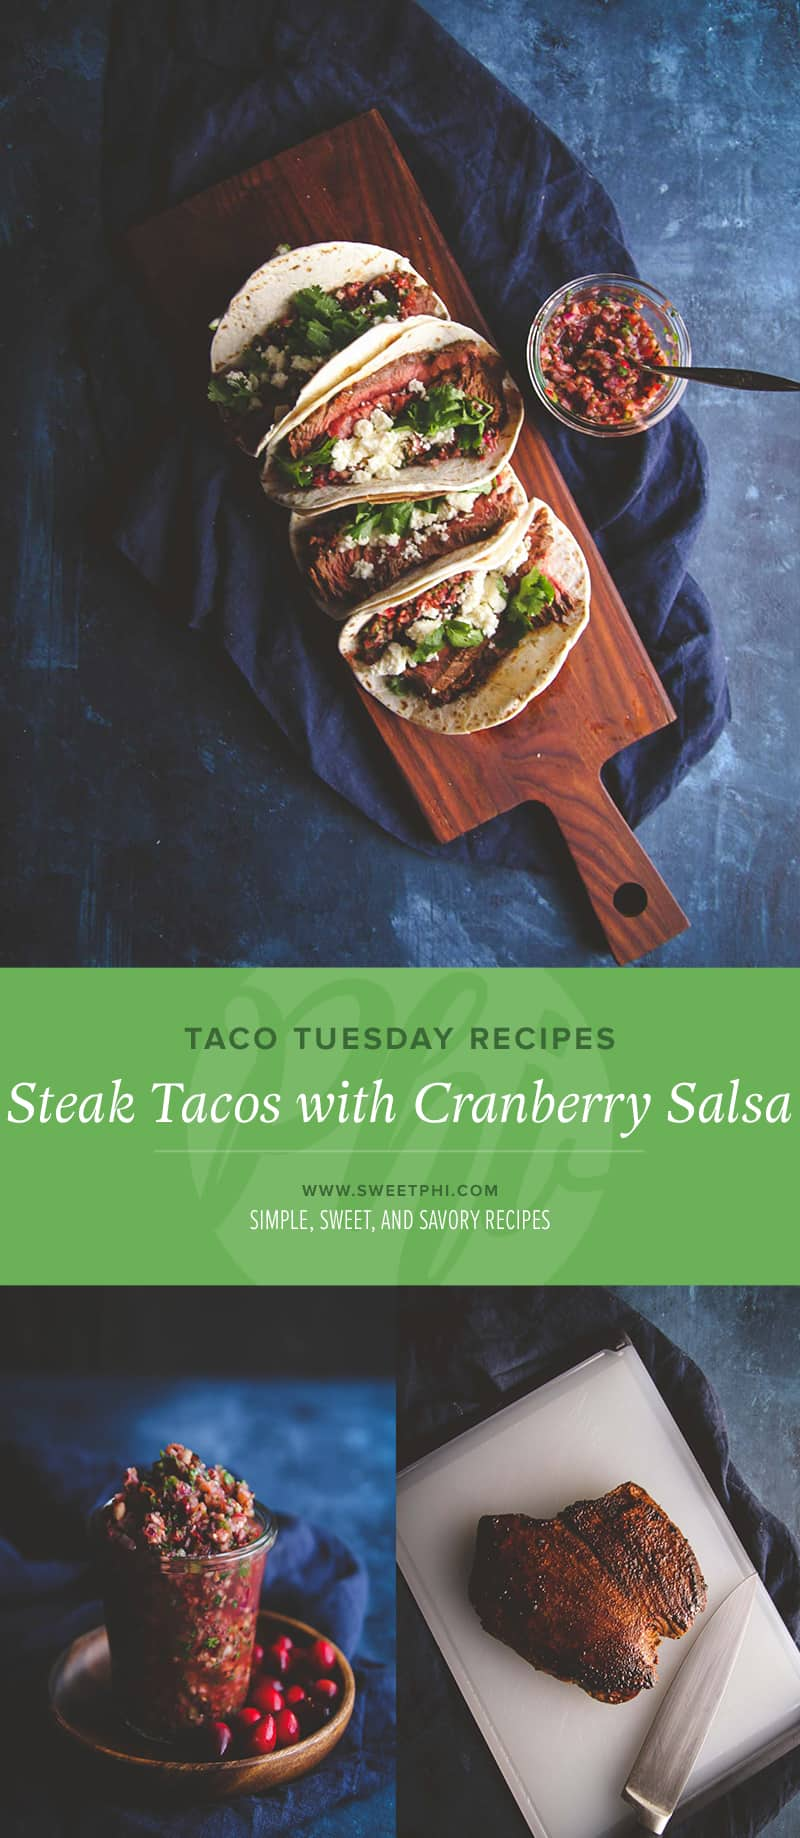 The best taco tuesday recipe with steak tacos with cranberry salsa